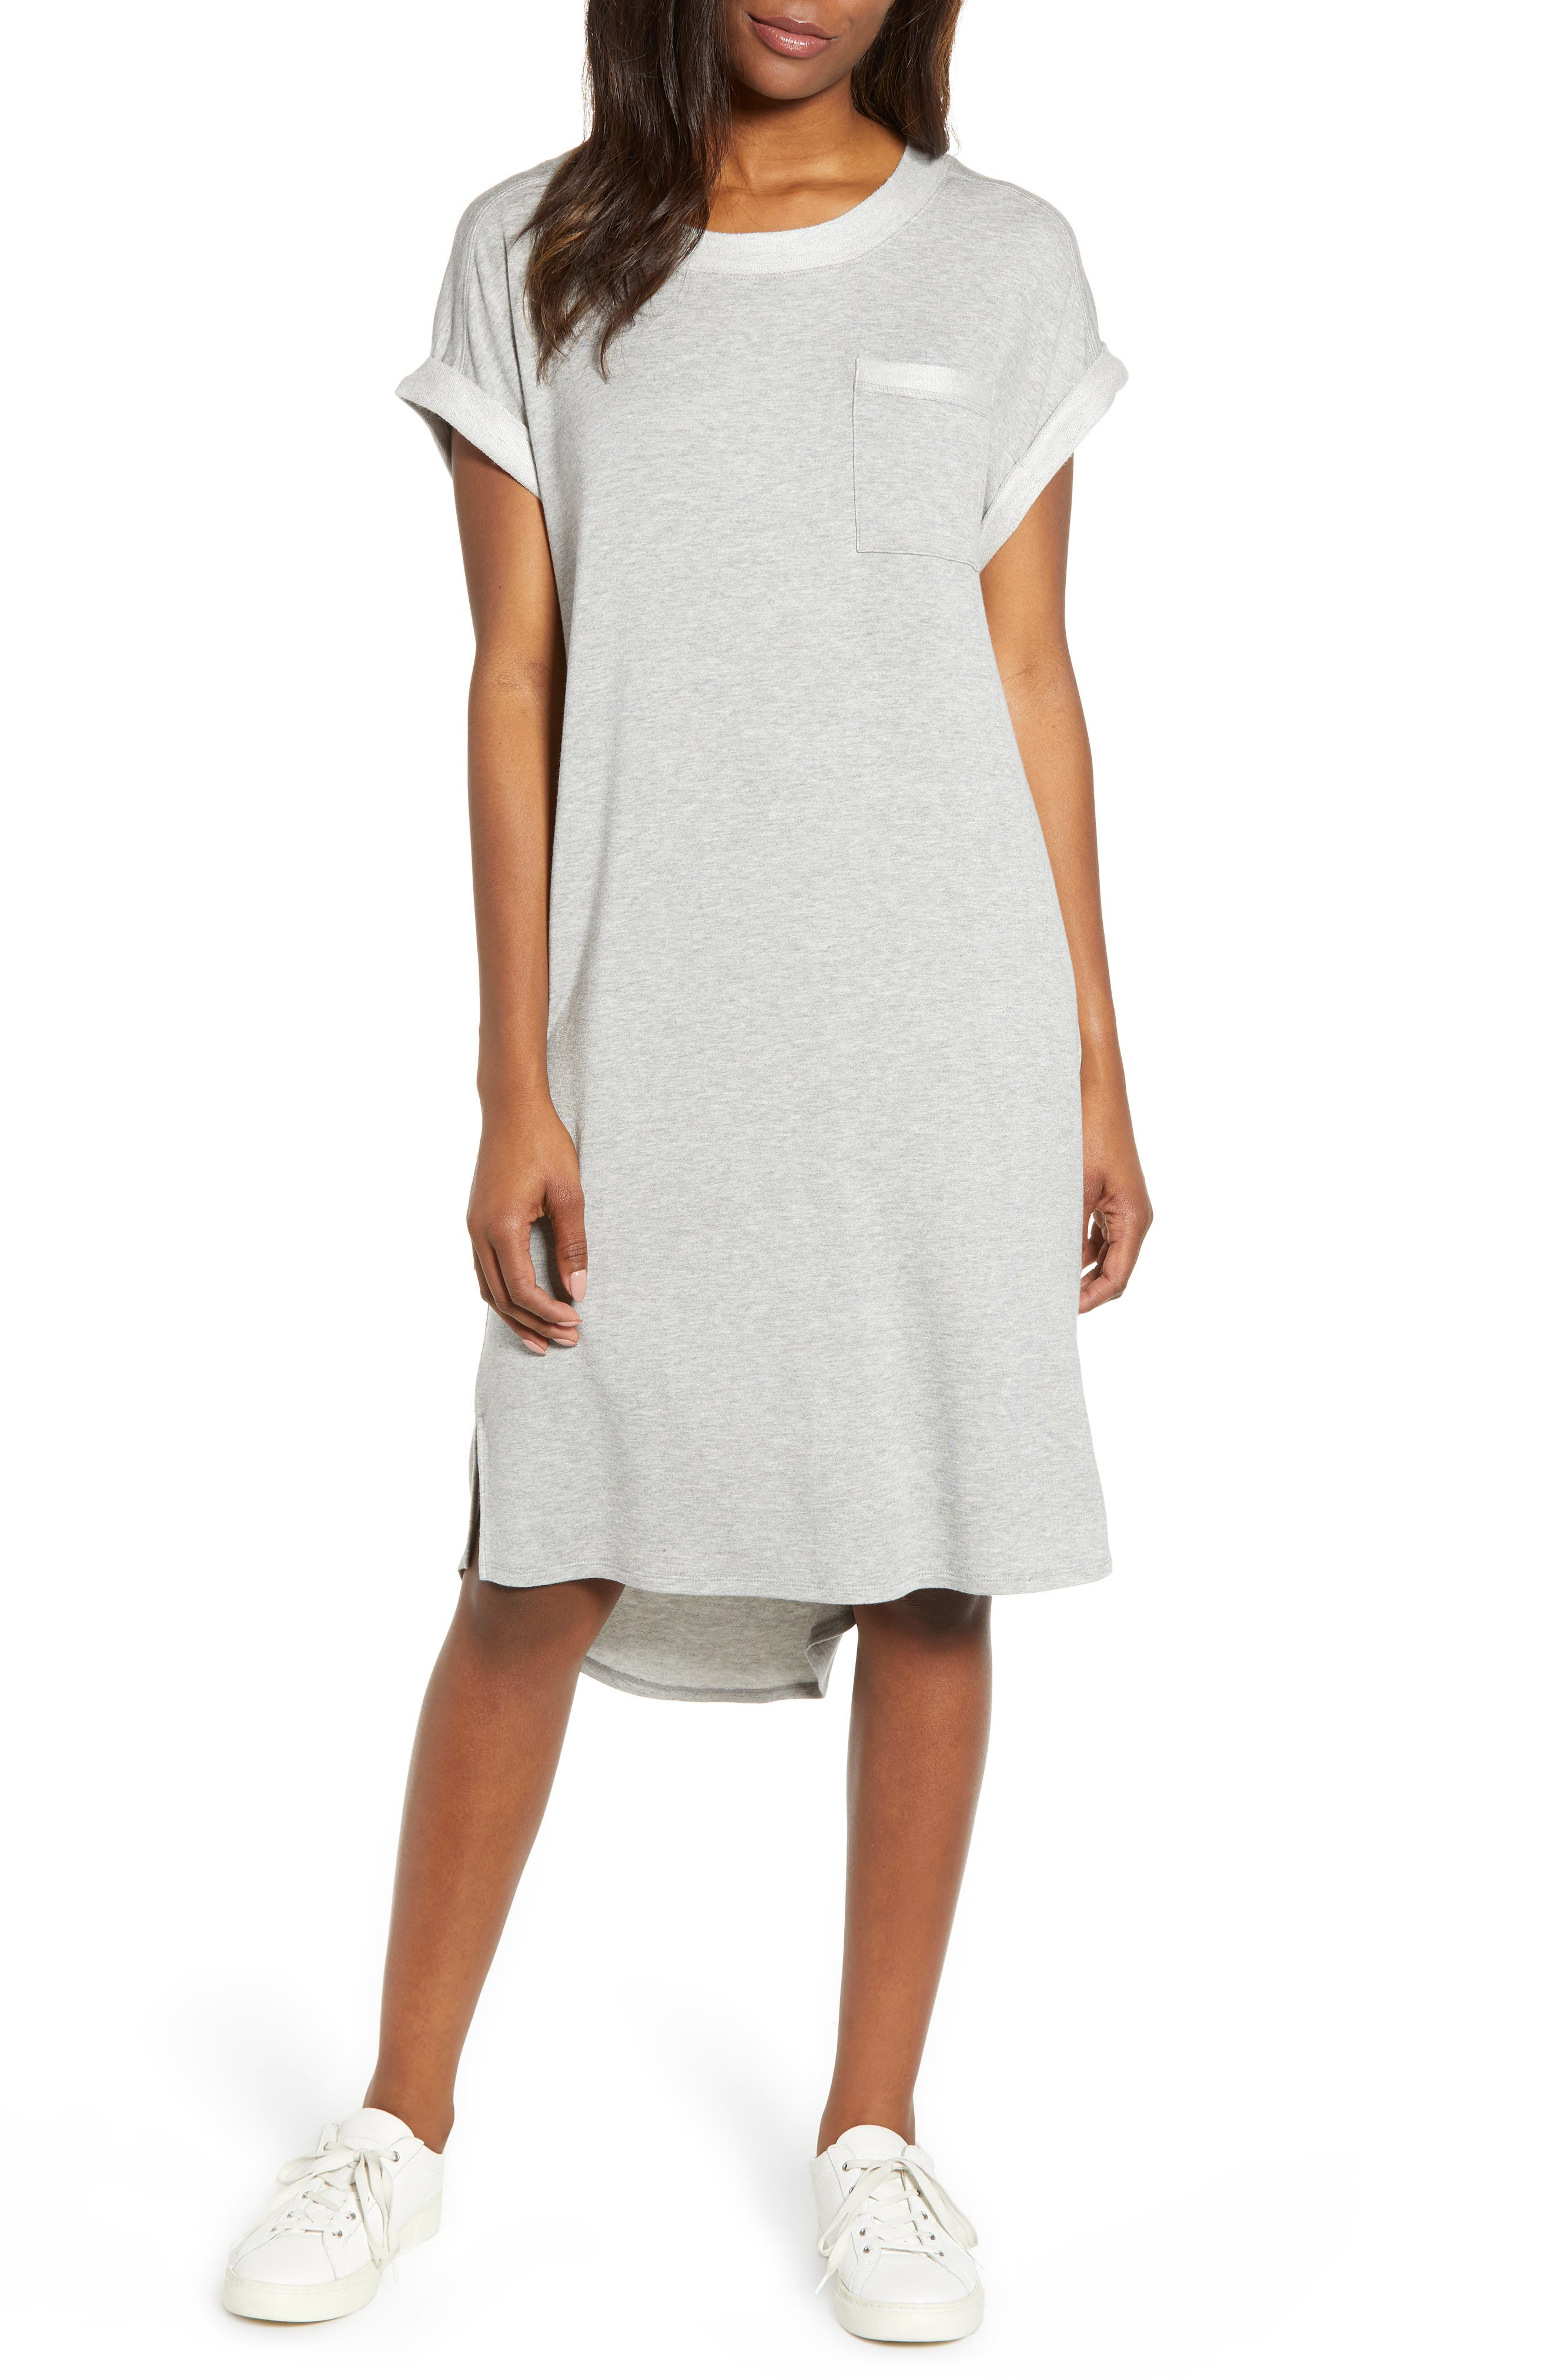 CASLON<SUP>®</SUP>, Off-Duty Knit T-Shirt Dress, Main thumbnail 1, color, GREY HEATHER